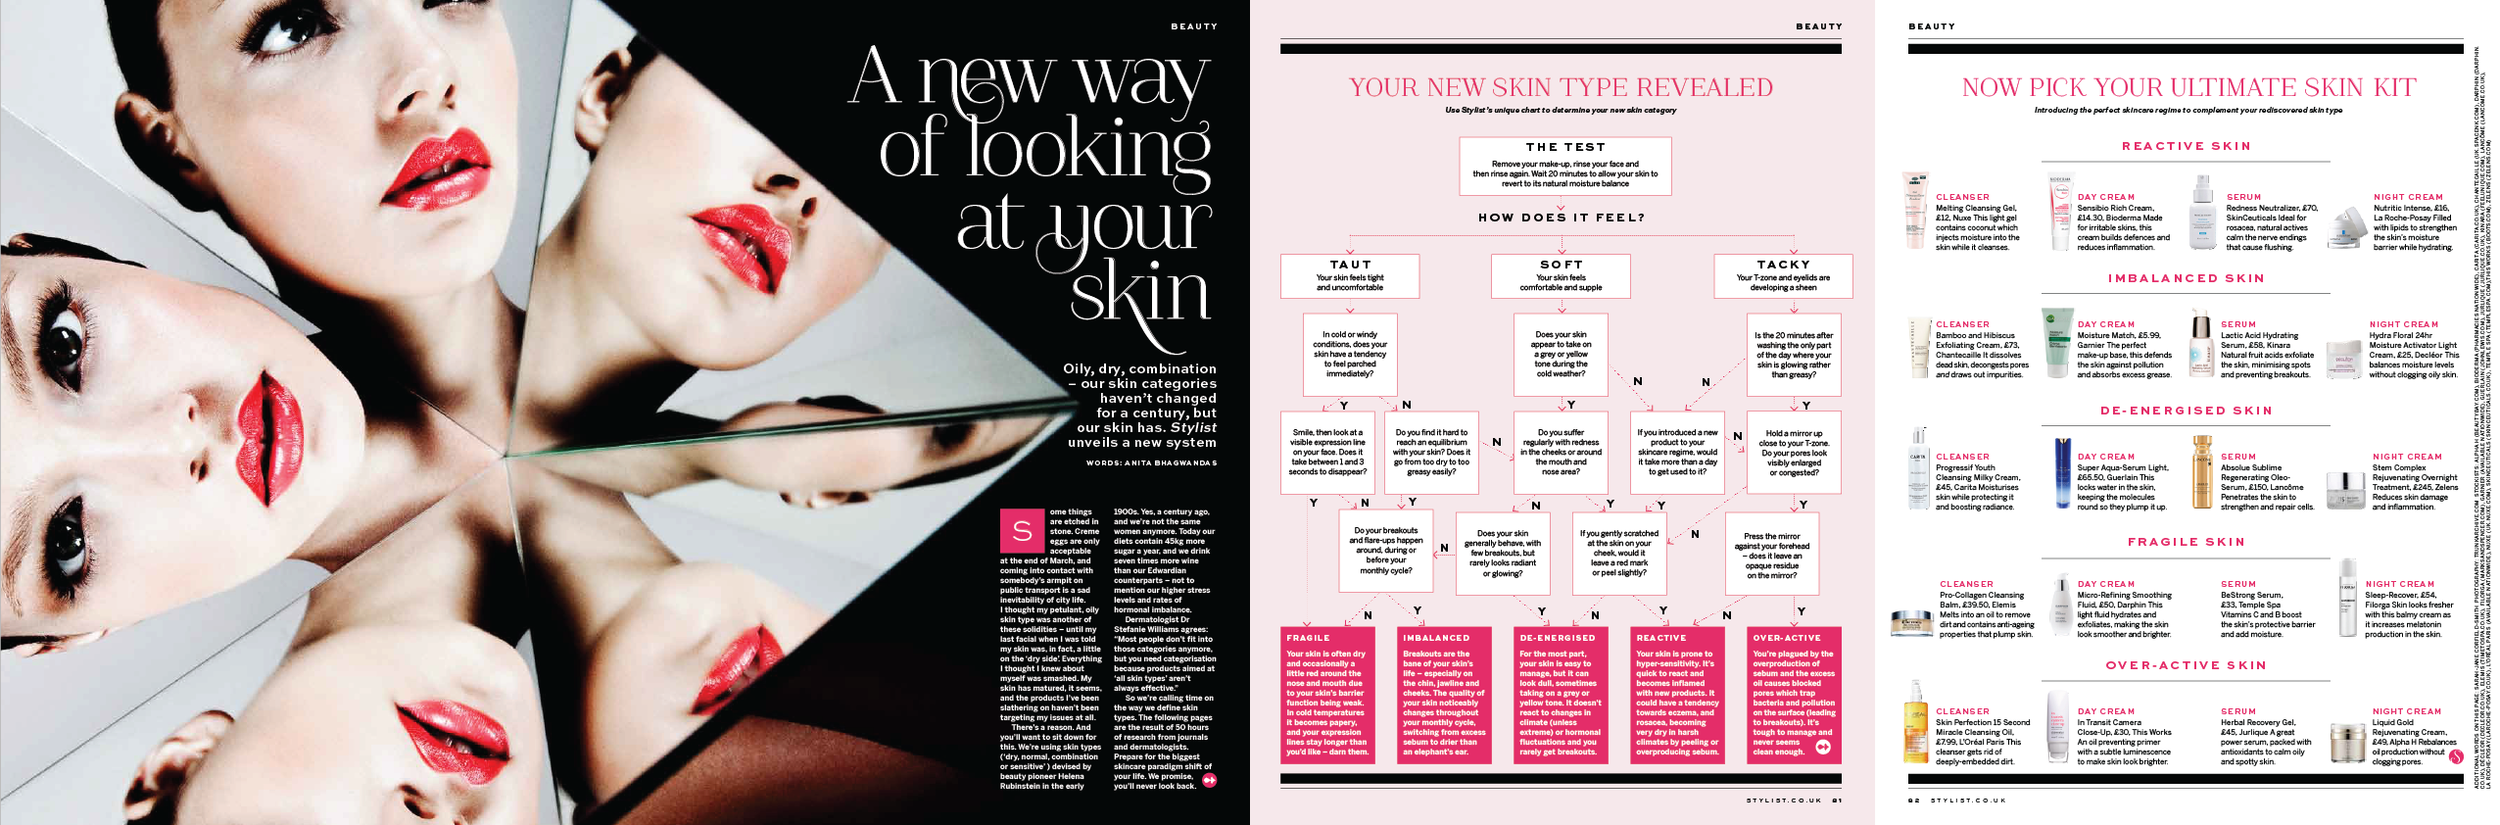 STYLIST - A NEW WAY OF LOOKING AT YOUR SKIN